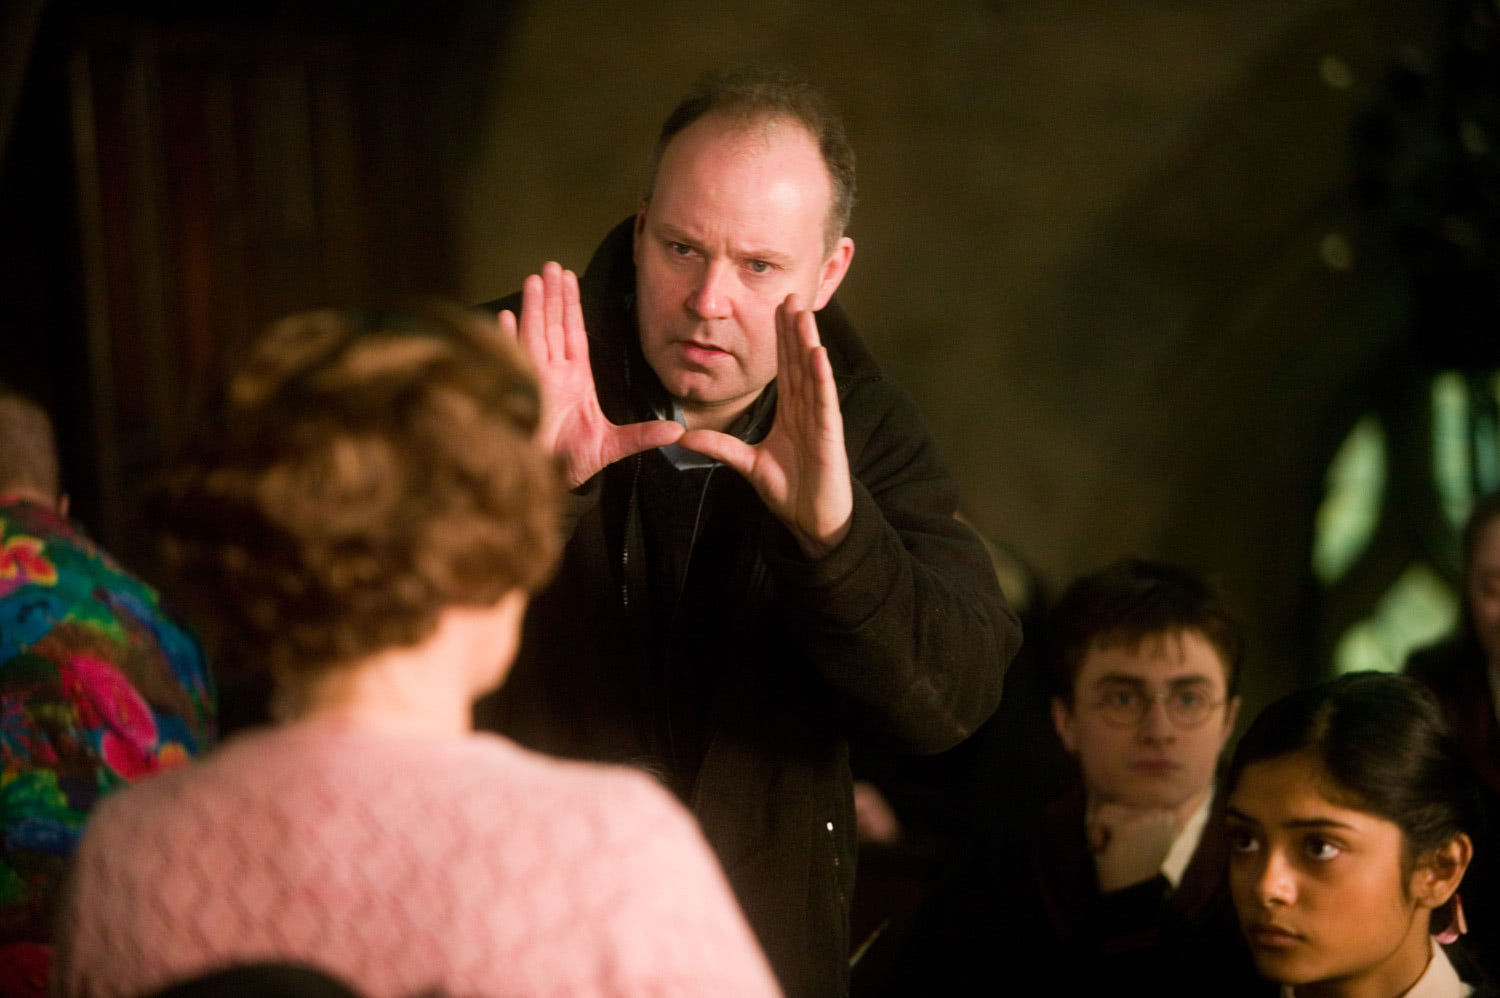 David Yates and Imelda Staunton